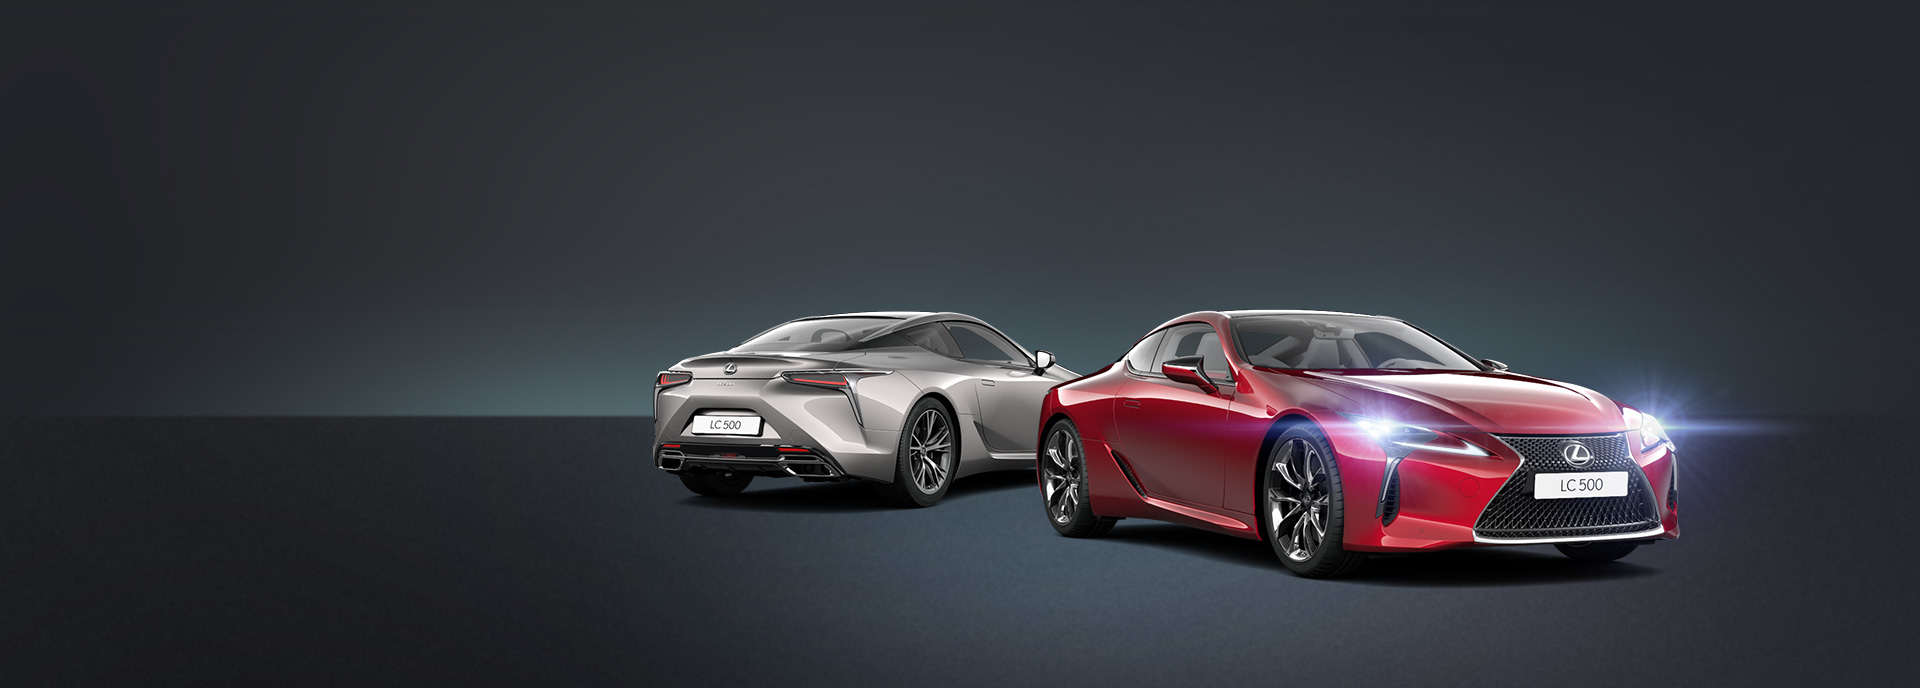 2017 Lexus LC 500 build promo